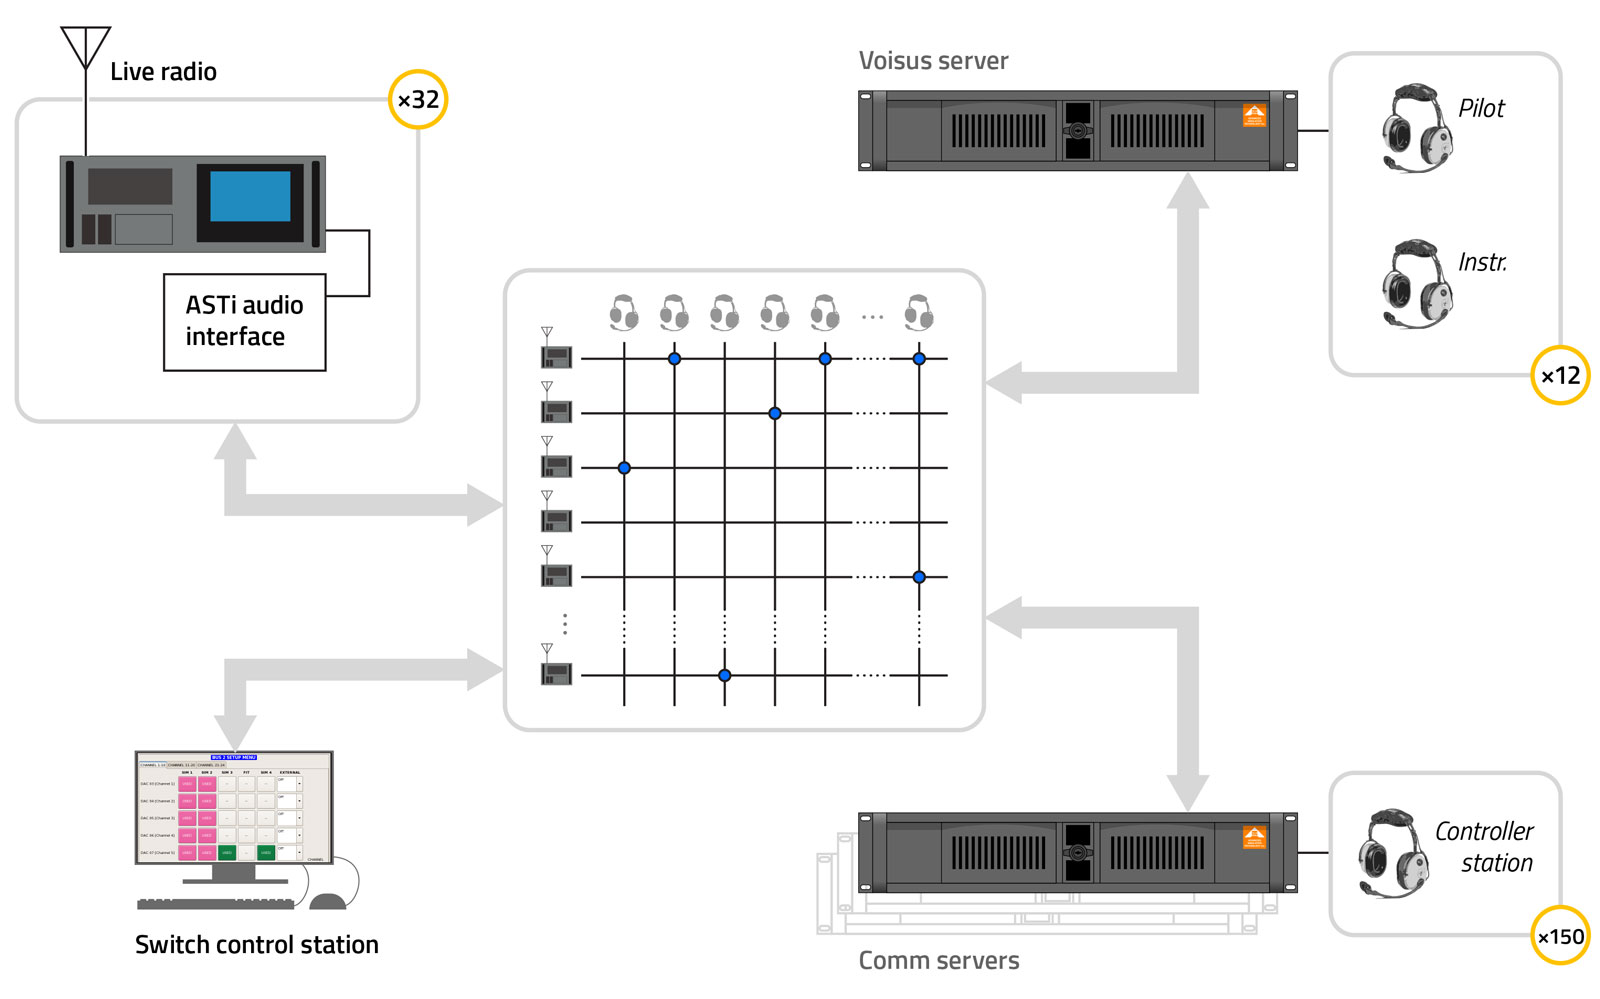 Asti Comms Switch And Equipment Interconnection Solution